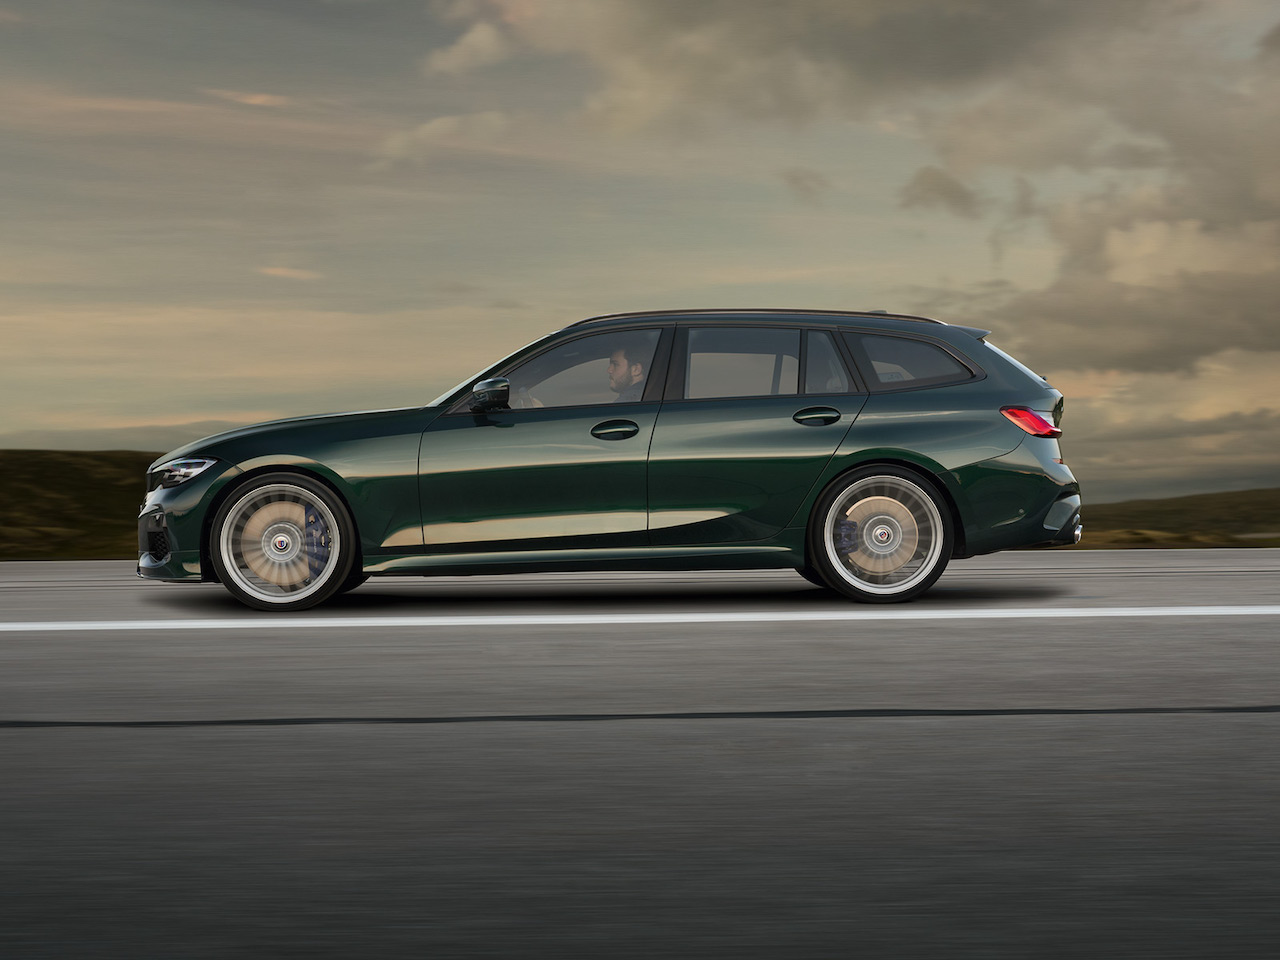 Alpina Builds the Almost-M3 Wagon BMW Won't |